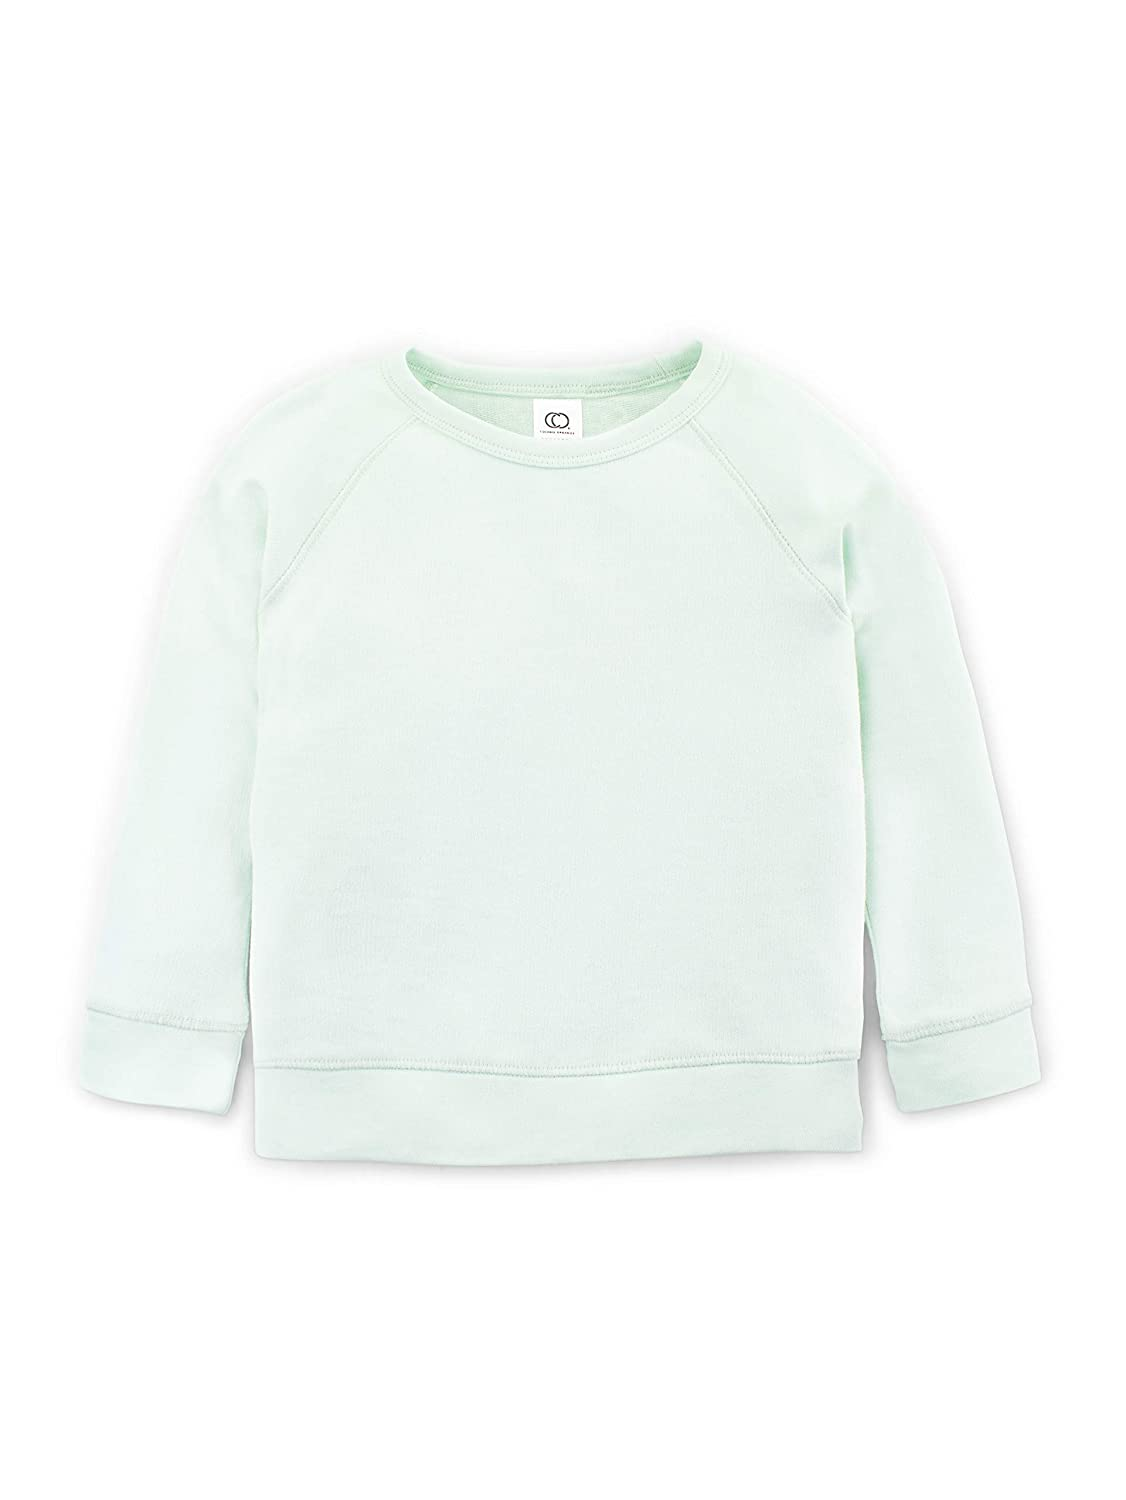 Colored Organics Baby & Toddler Brooklyn Organic Long Sleeve Pullover Shirt